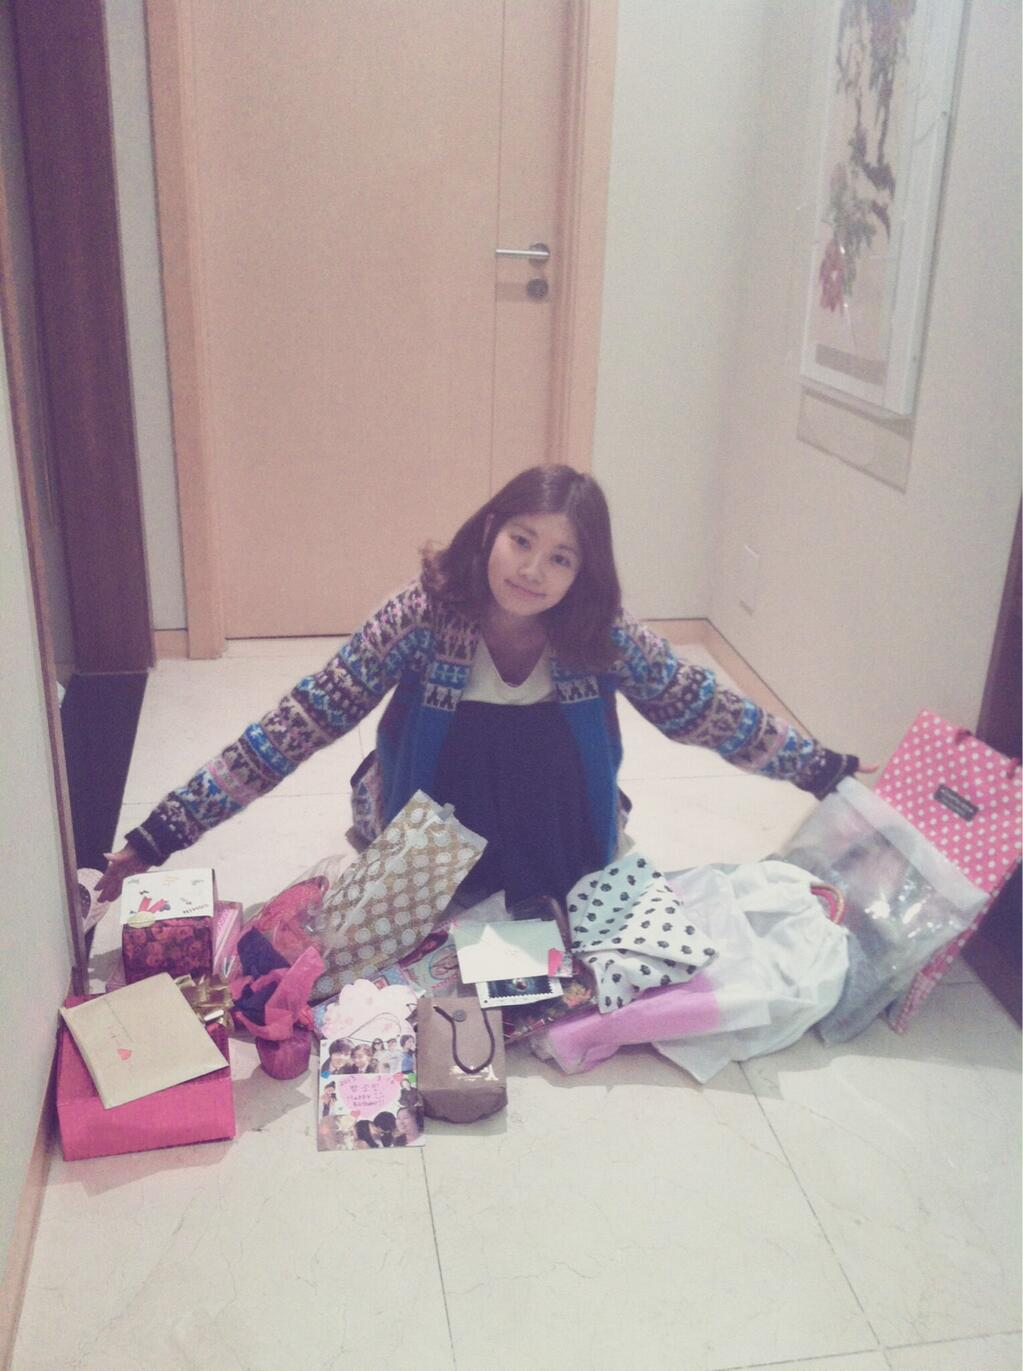 정소민 ) Jung So Min's Twitter Photo Update [ March 19, 2013 ]